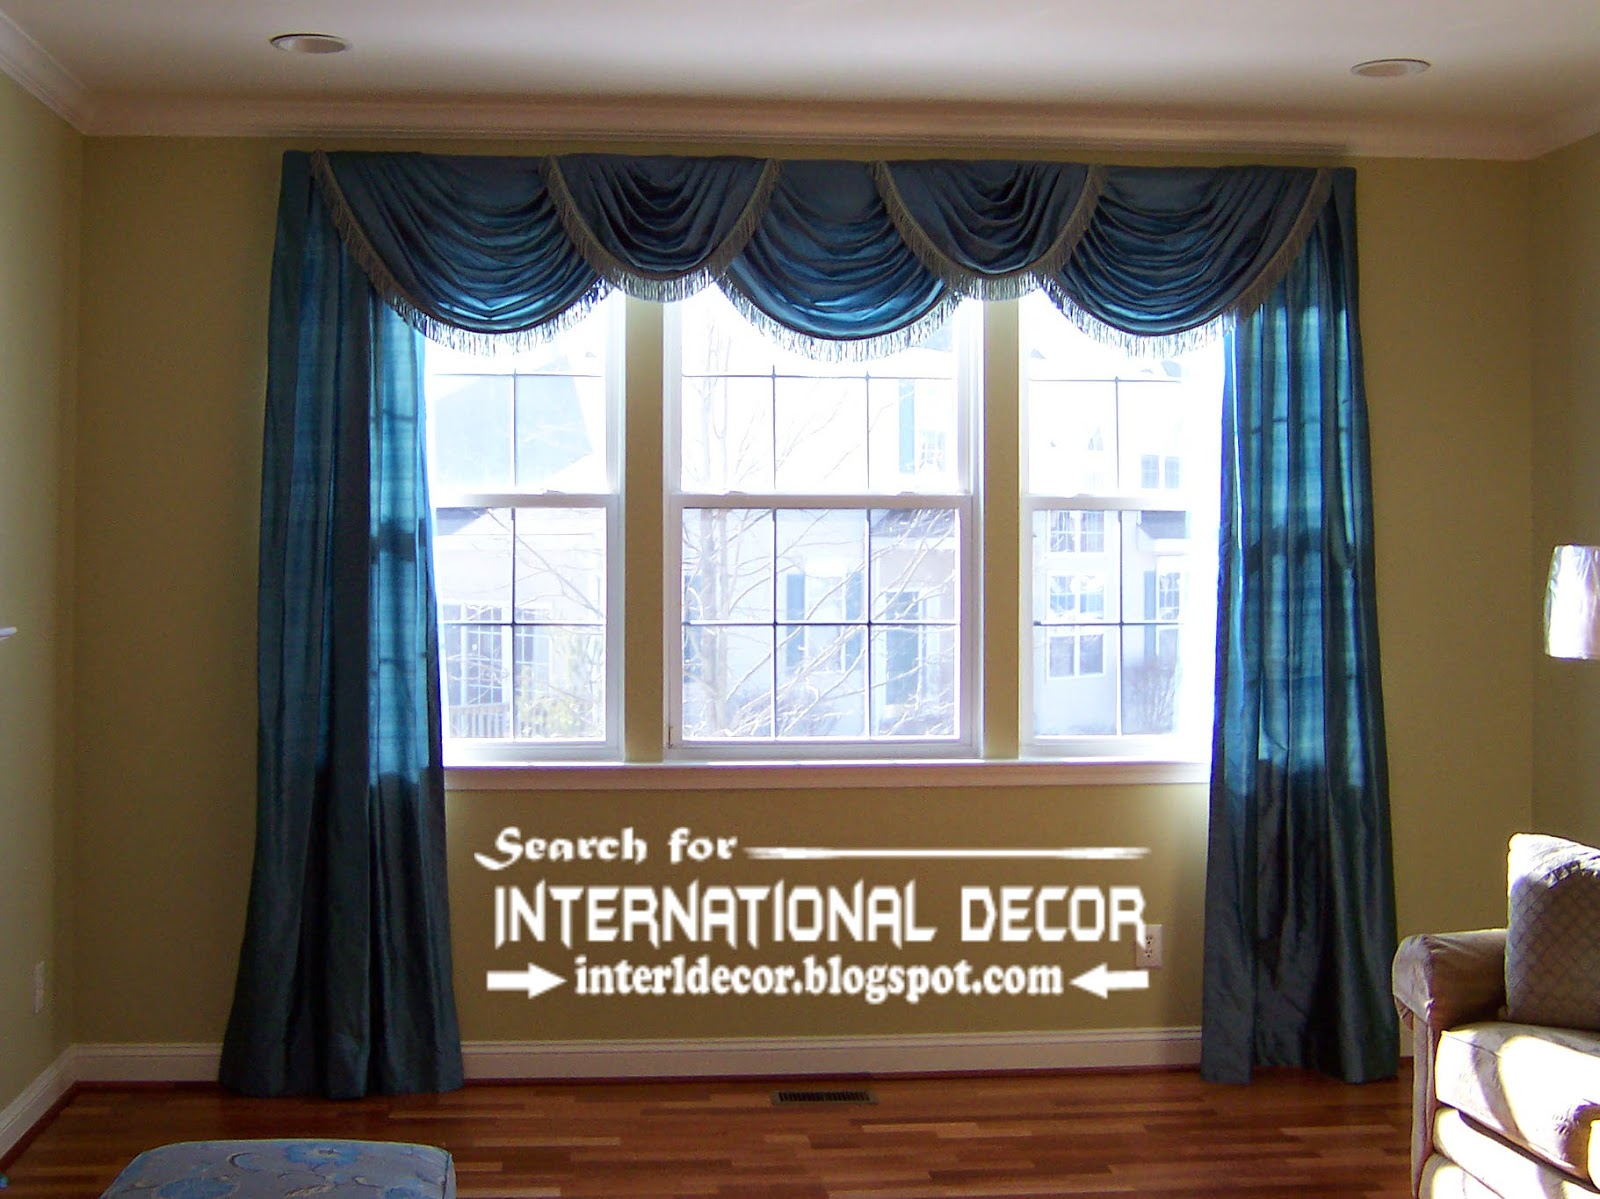 new scarf curtain designs scarf curtains ideas - Curtain Design Ideas For Living Room